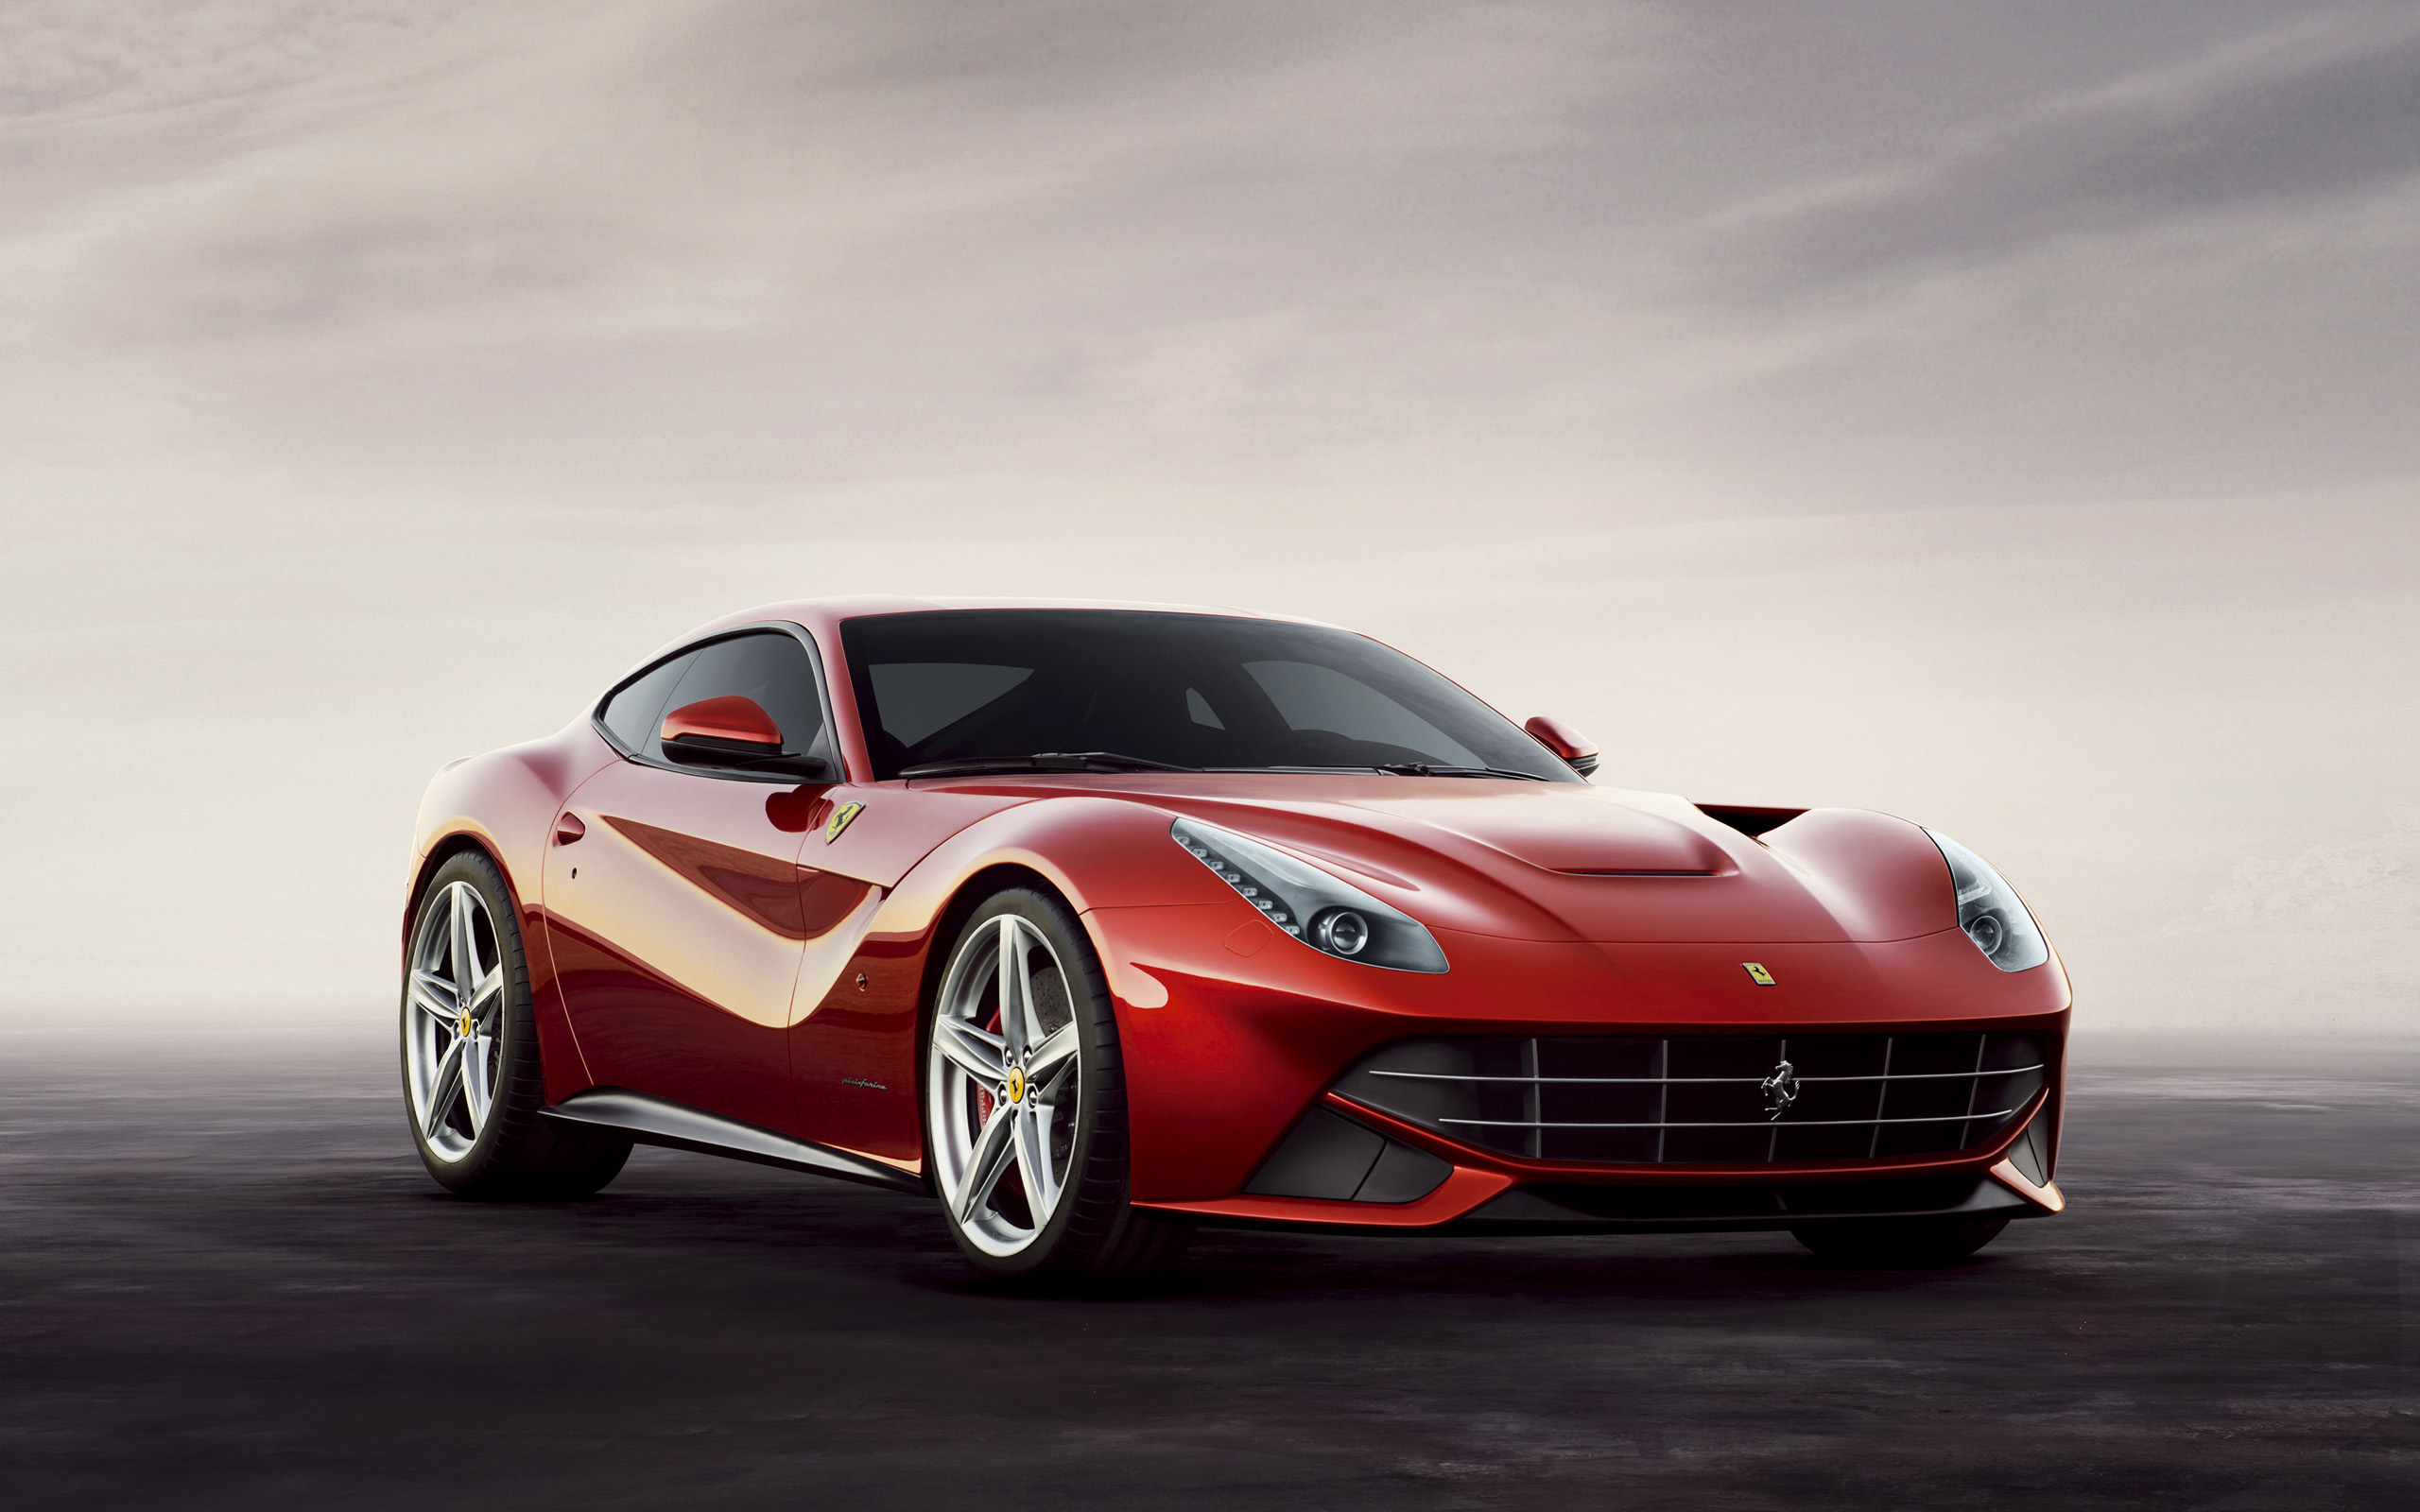 Ferrari Ready To Take On Tesla With Its Version Of An Electric Supercar